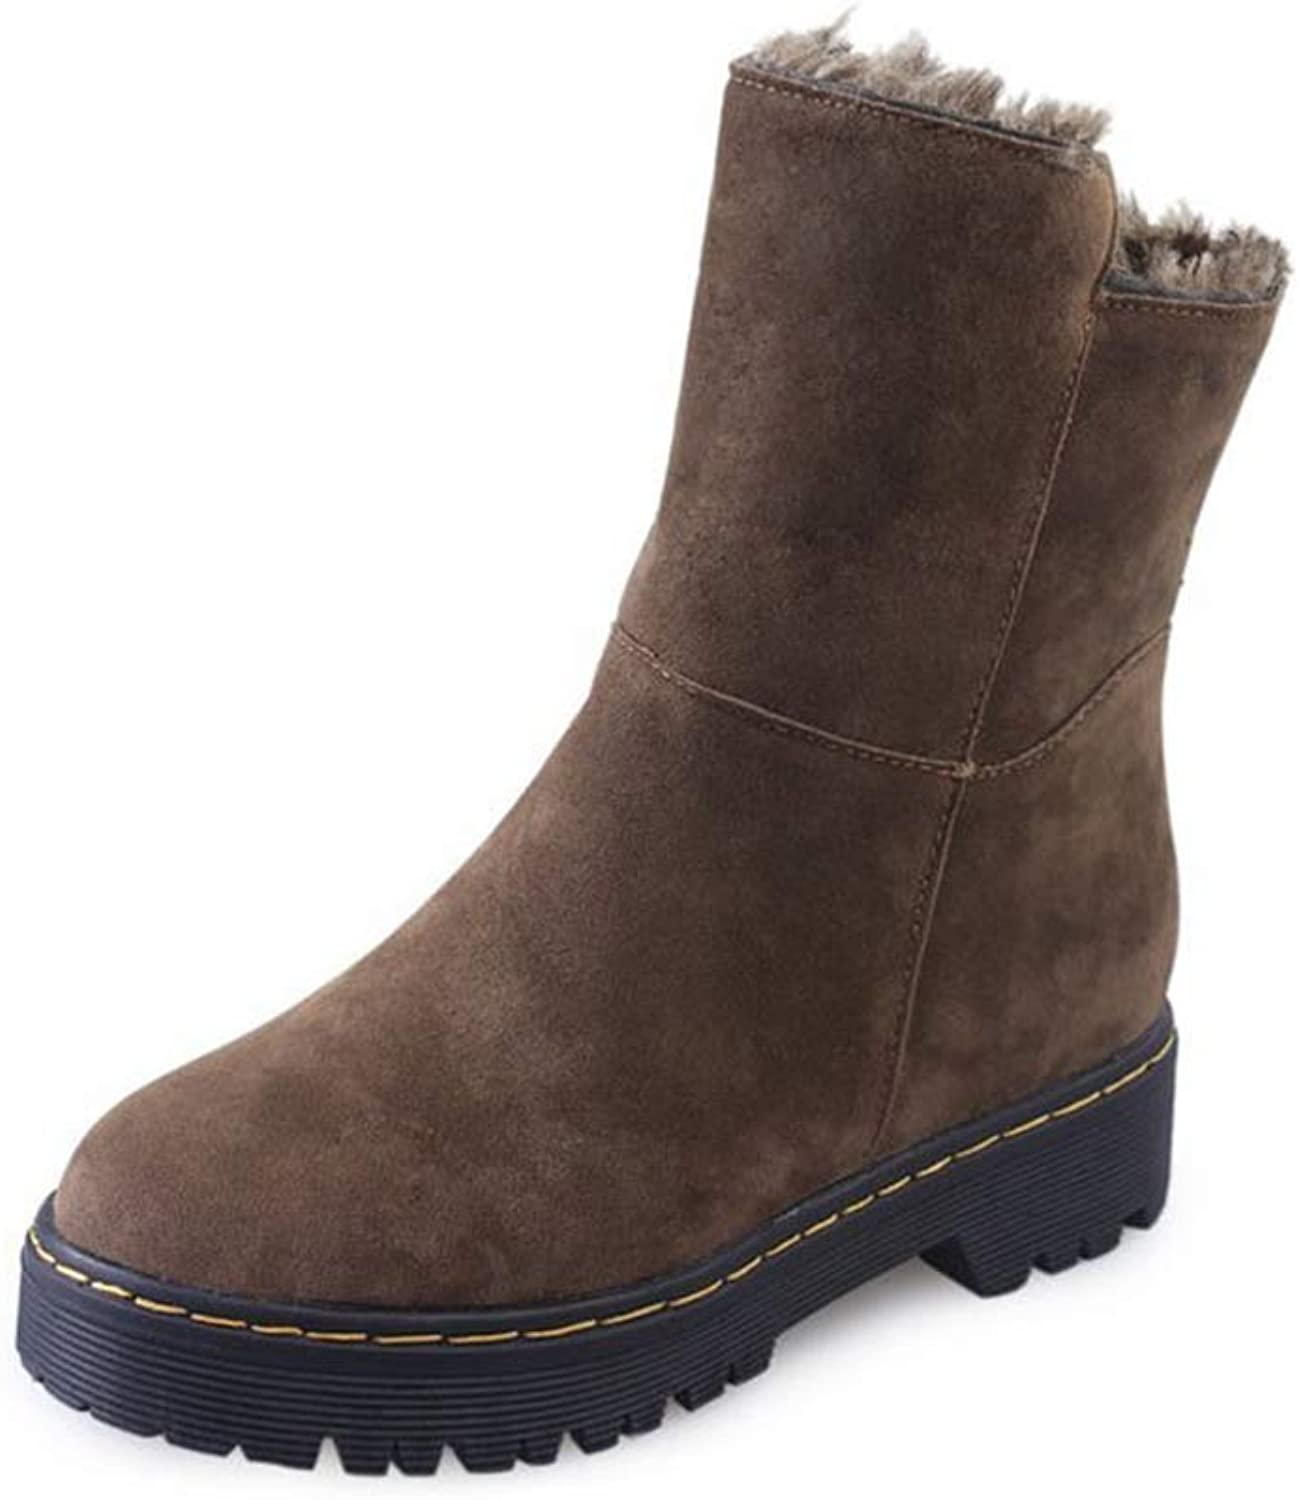 Woman Ankle Boots Low Sauqre Heel Slip On Plush Lining Warm Round Toe Antislip Ladies Fashion Winter Snow Boots